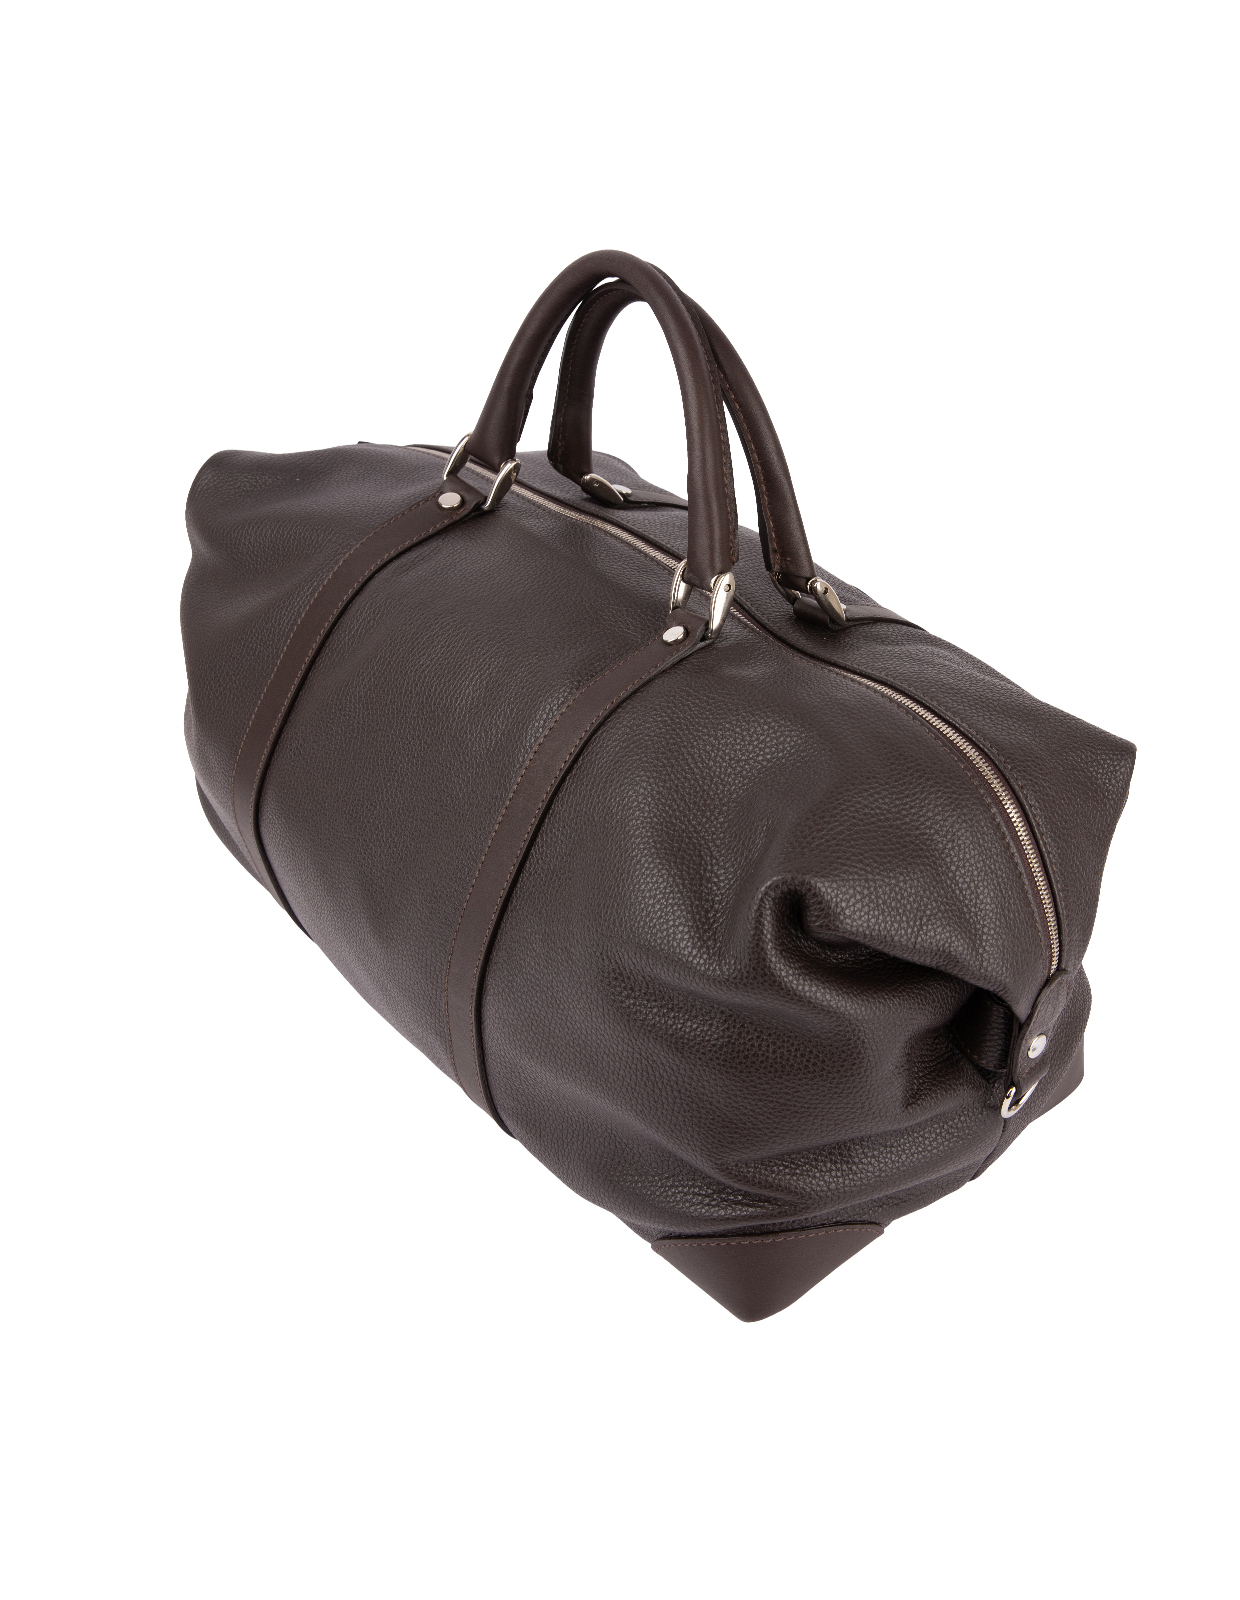 Weekend Bag Bottalato Leather DarkBrown